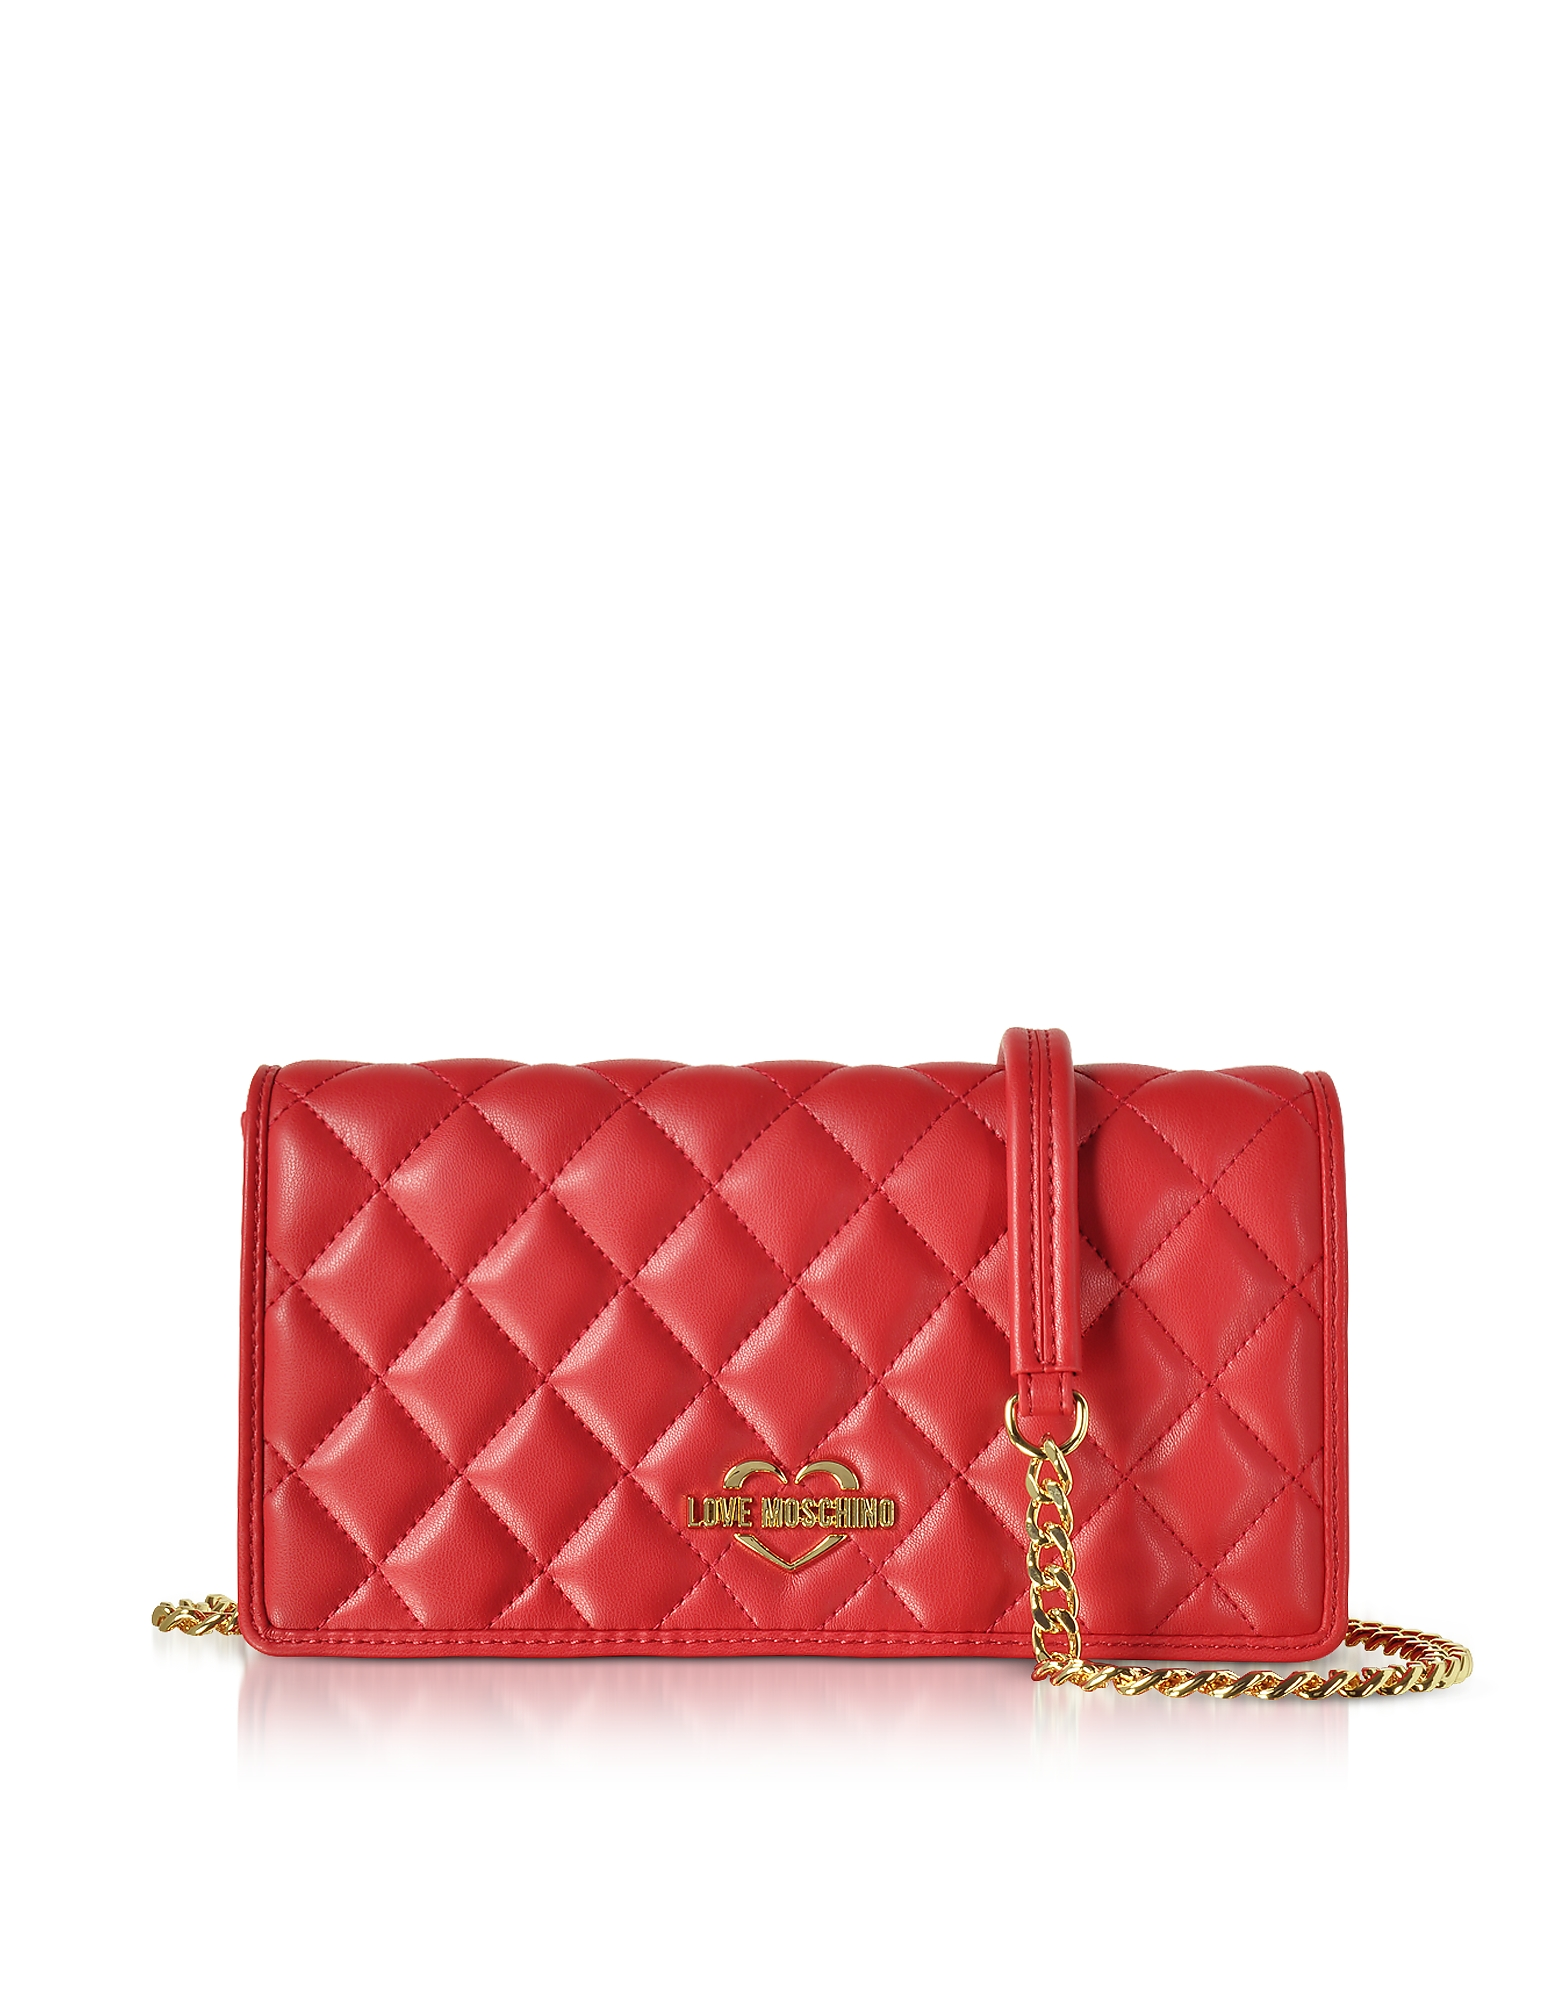 Love Moschino Handbags, Red Superquilted Eco-Leather Clutch w/Shoulder Strap